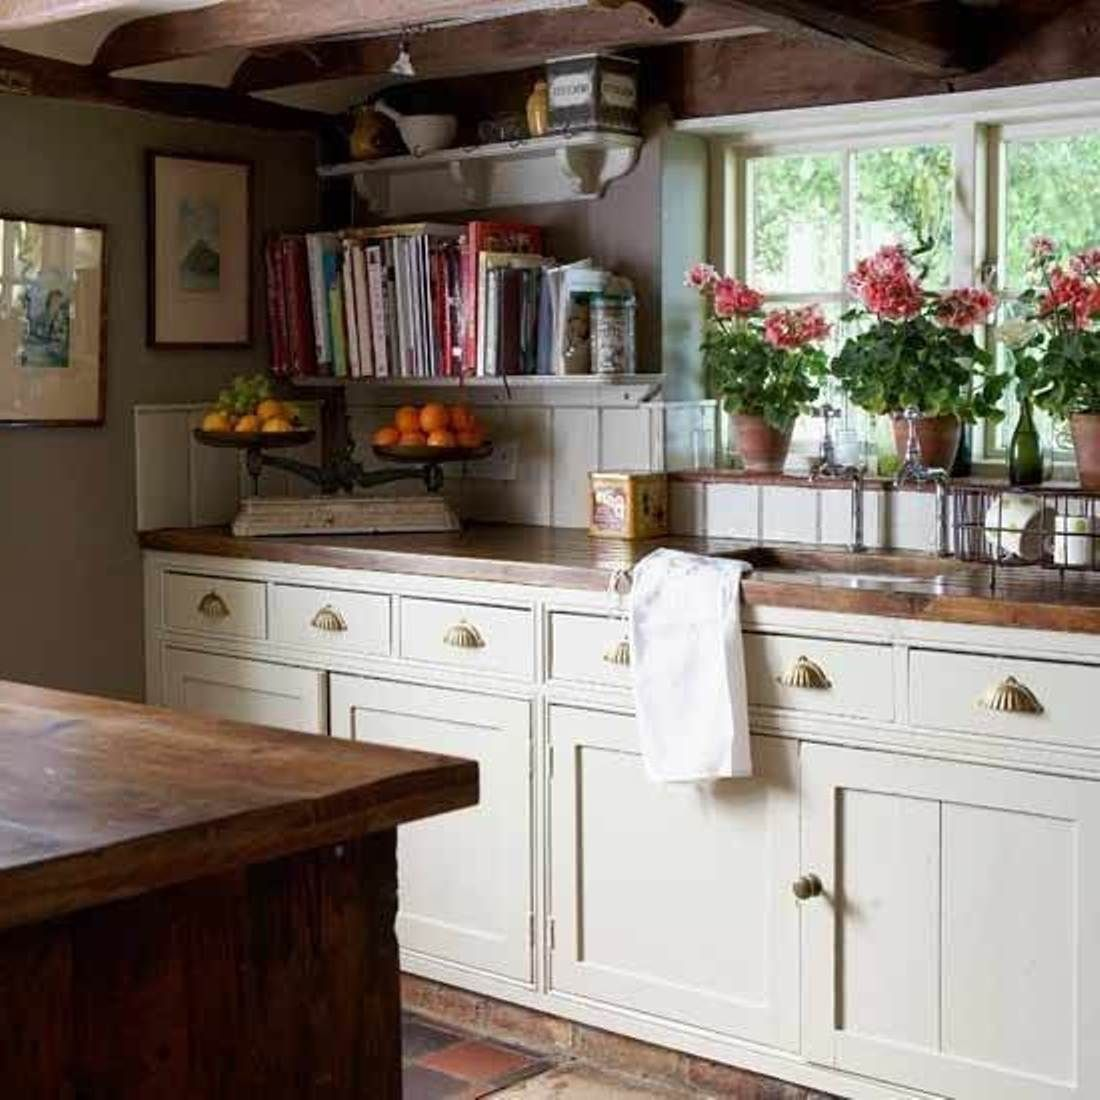 Marvellous Beautiful English Country Kitchens English Country Kitchens Cottage Style Kitchen Country Kitchen Decor